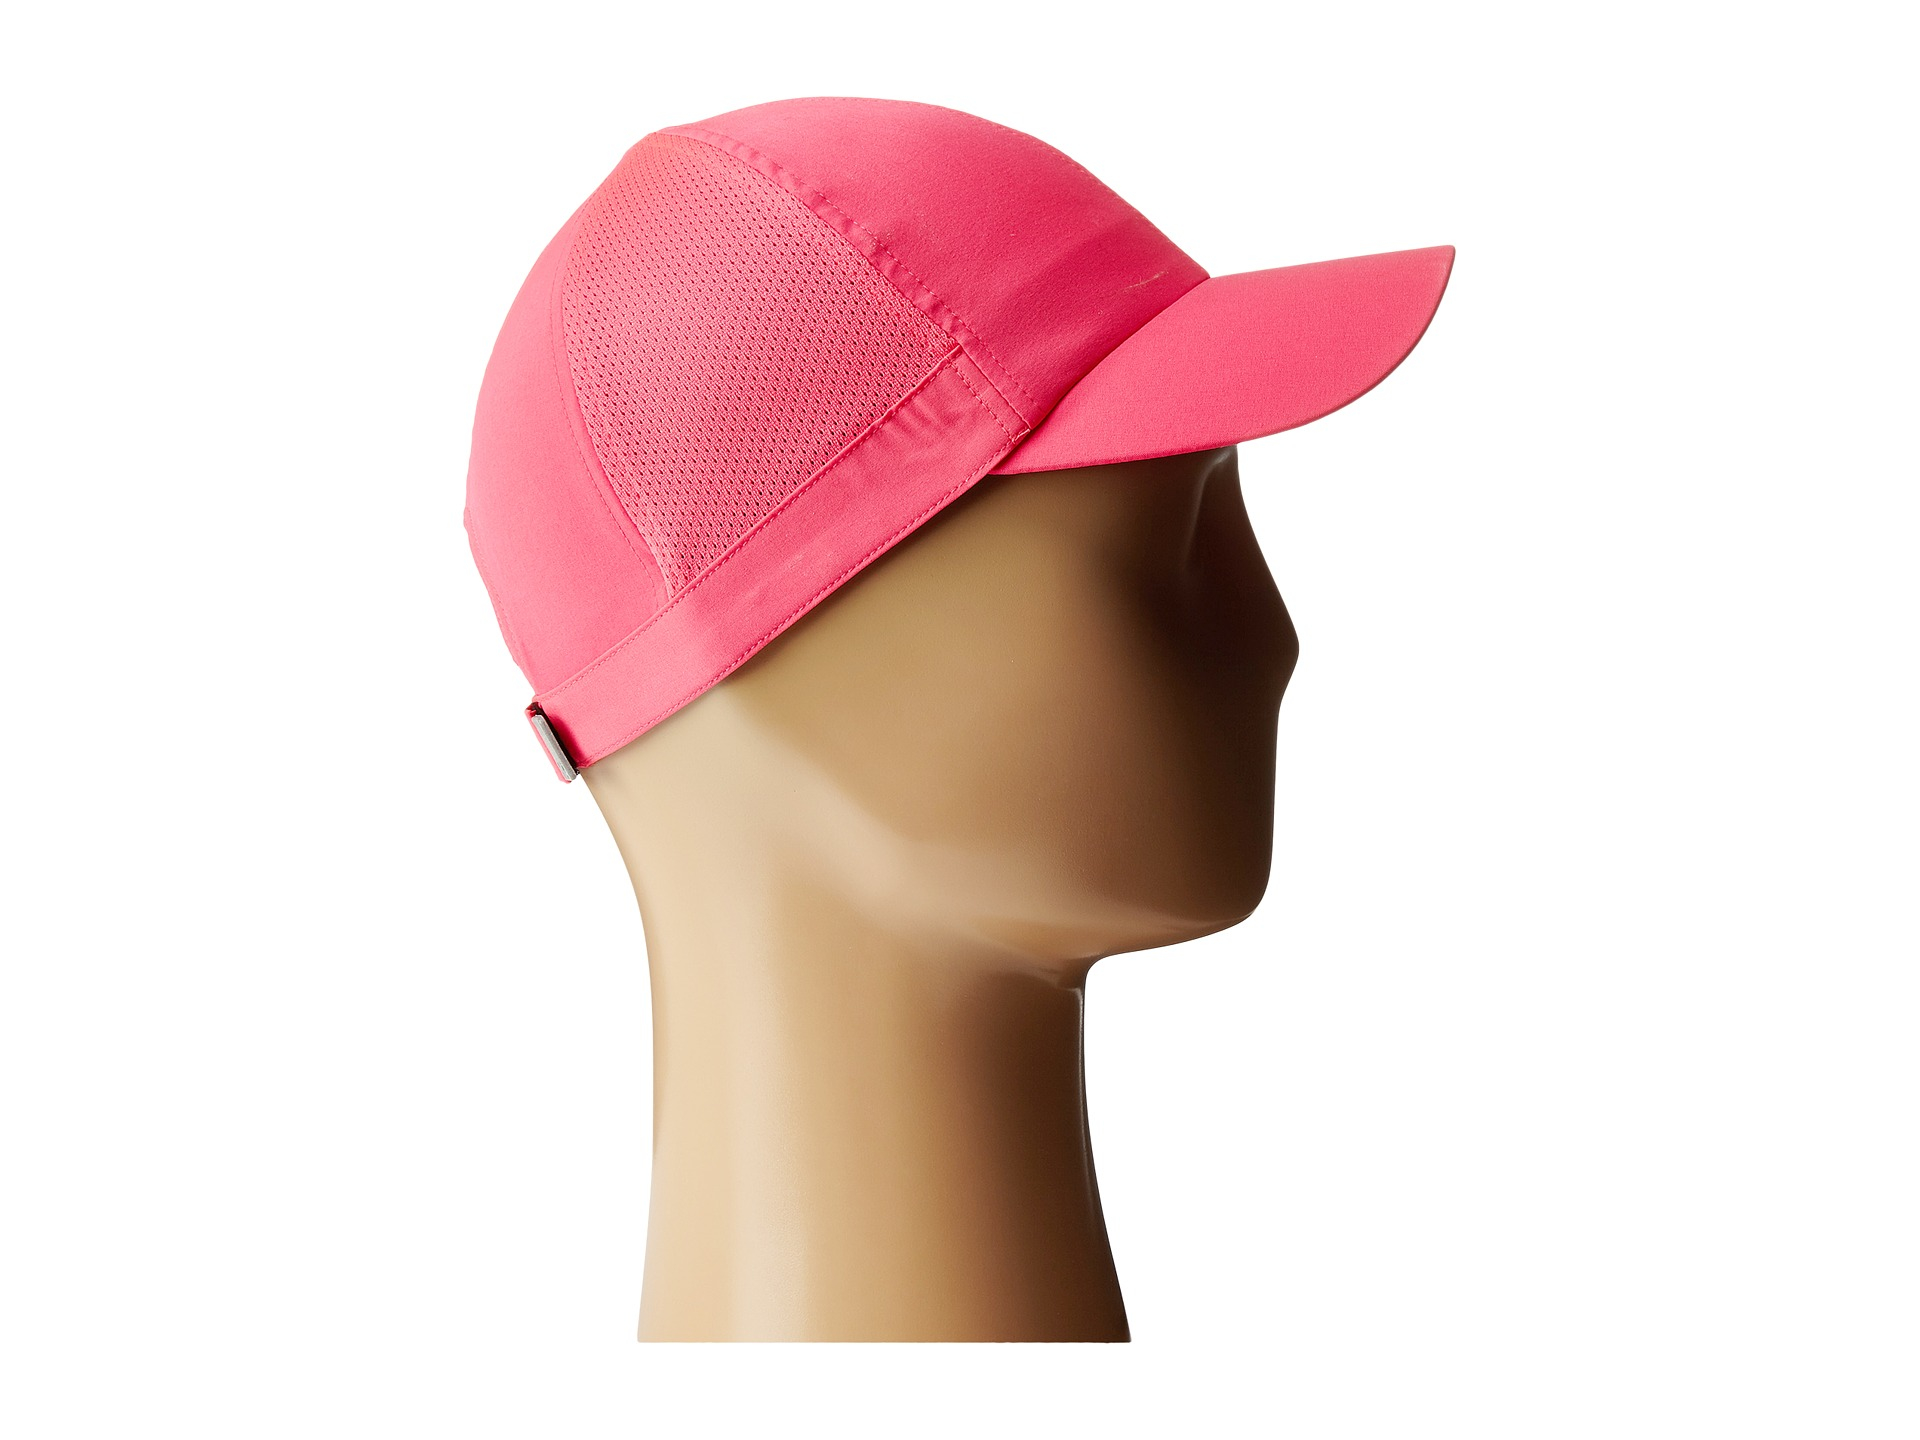 f2f5aa2a061b2 Under Armour Ua Fly Fast Cap in Pink - Lyst